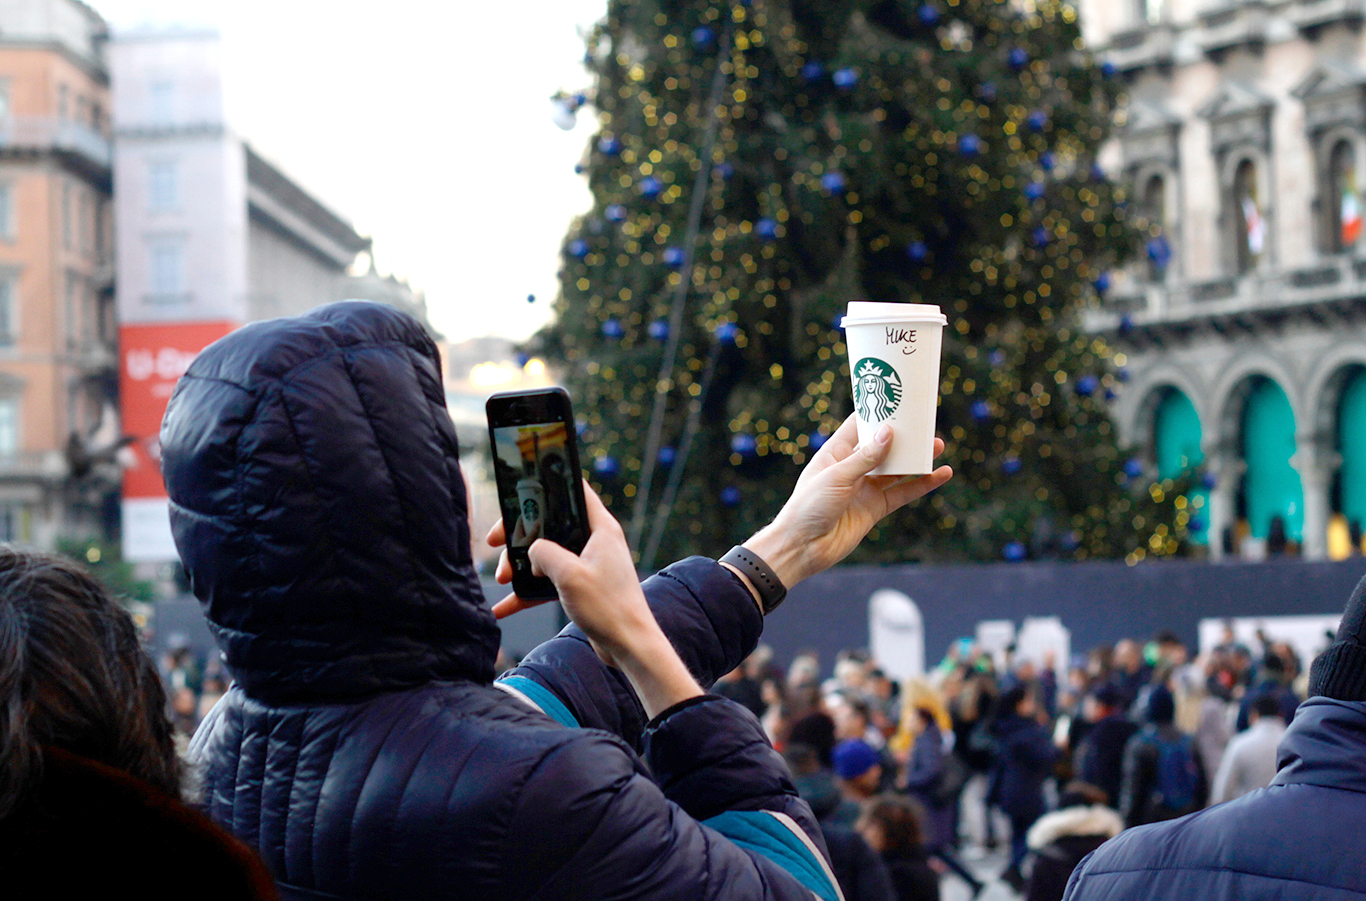 Man takes a picture of a Coffee Cup creating user generated content